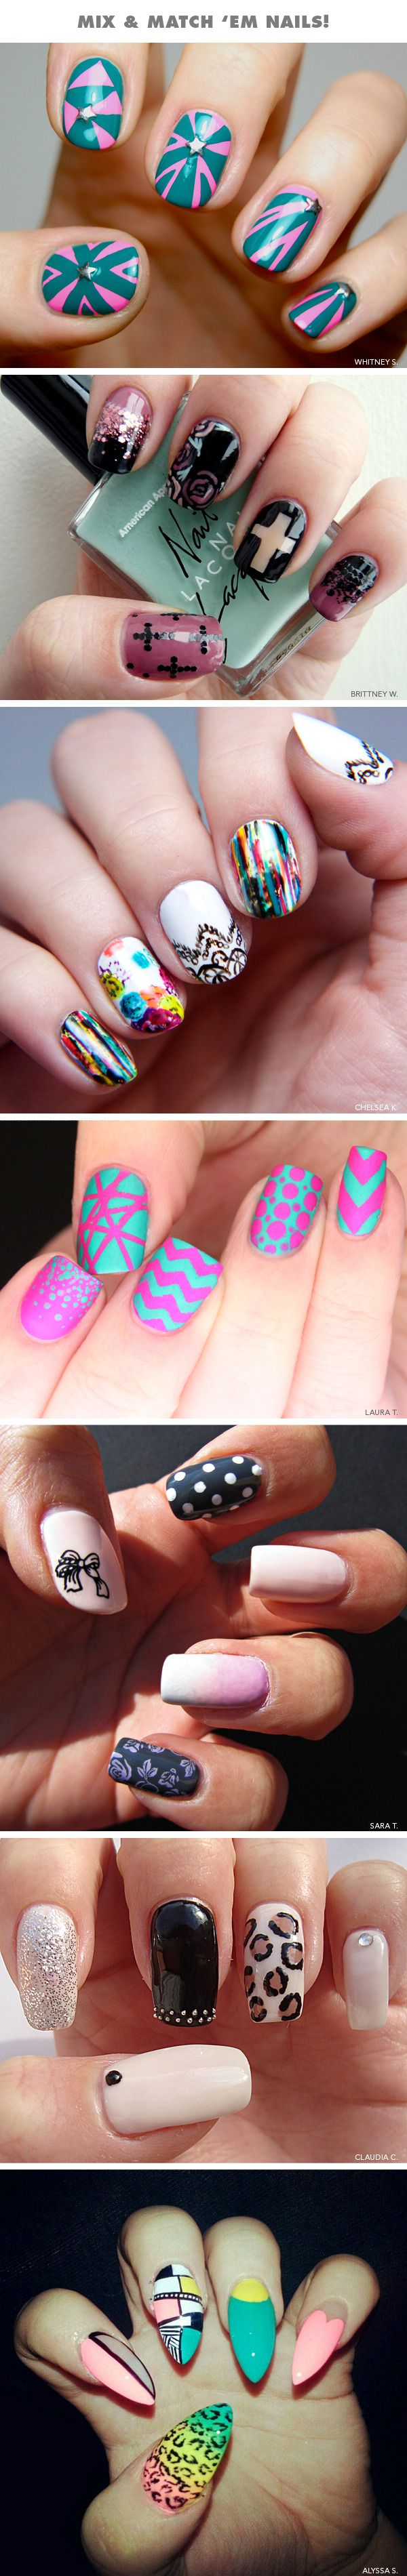 Mix-and-Match Nails! #nail #nails #nailart #unha #unhas #unhasdecoradas